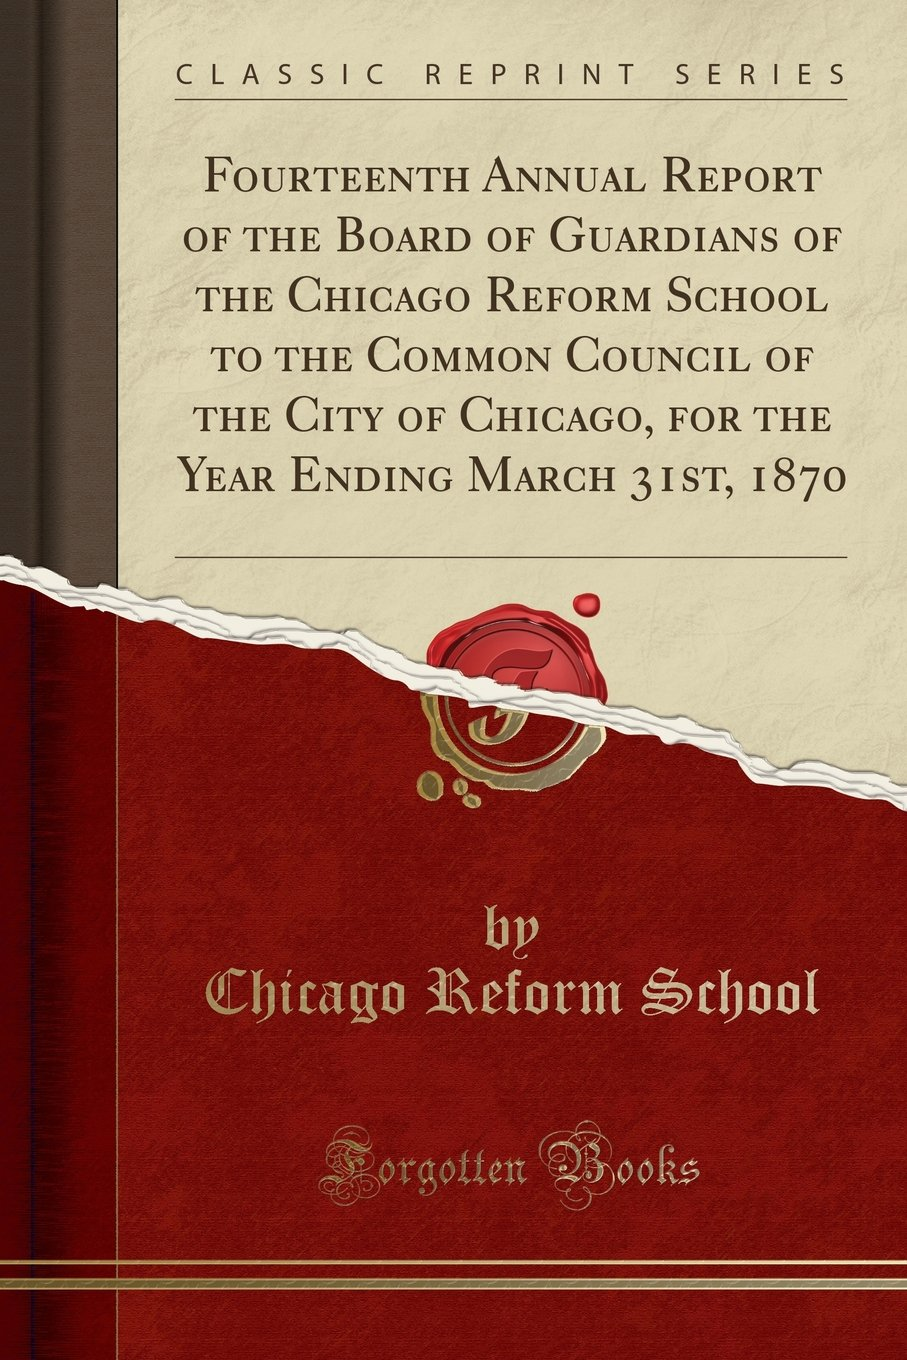 Read Online Fourteenth Annual Report of the Board of Guardians of the Chicago Reform School to the Common Council of the City of Chicago, for the Year Ending March 31st, 1870 (Classic Reprint) PDF